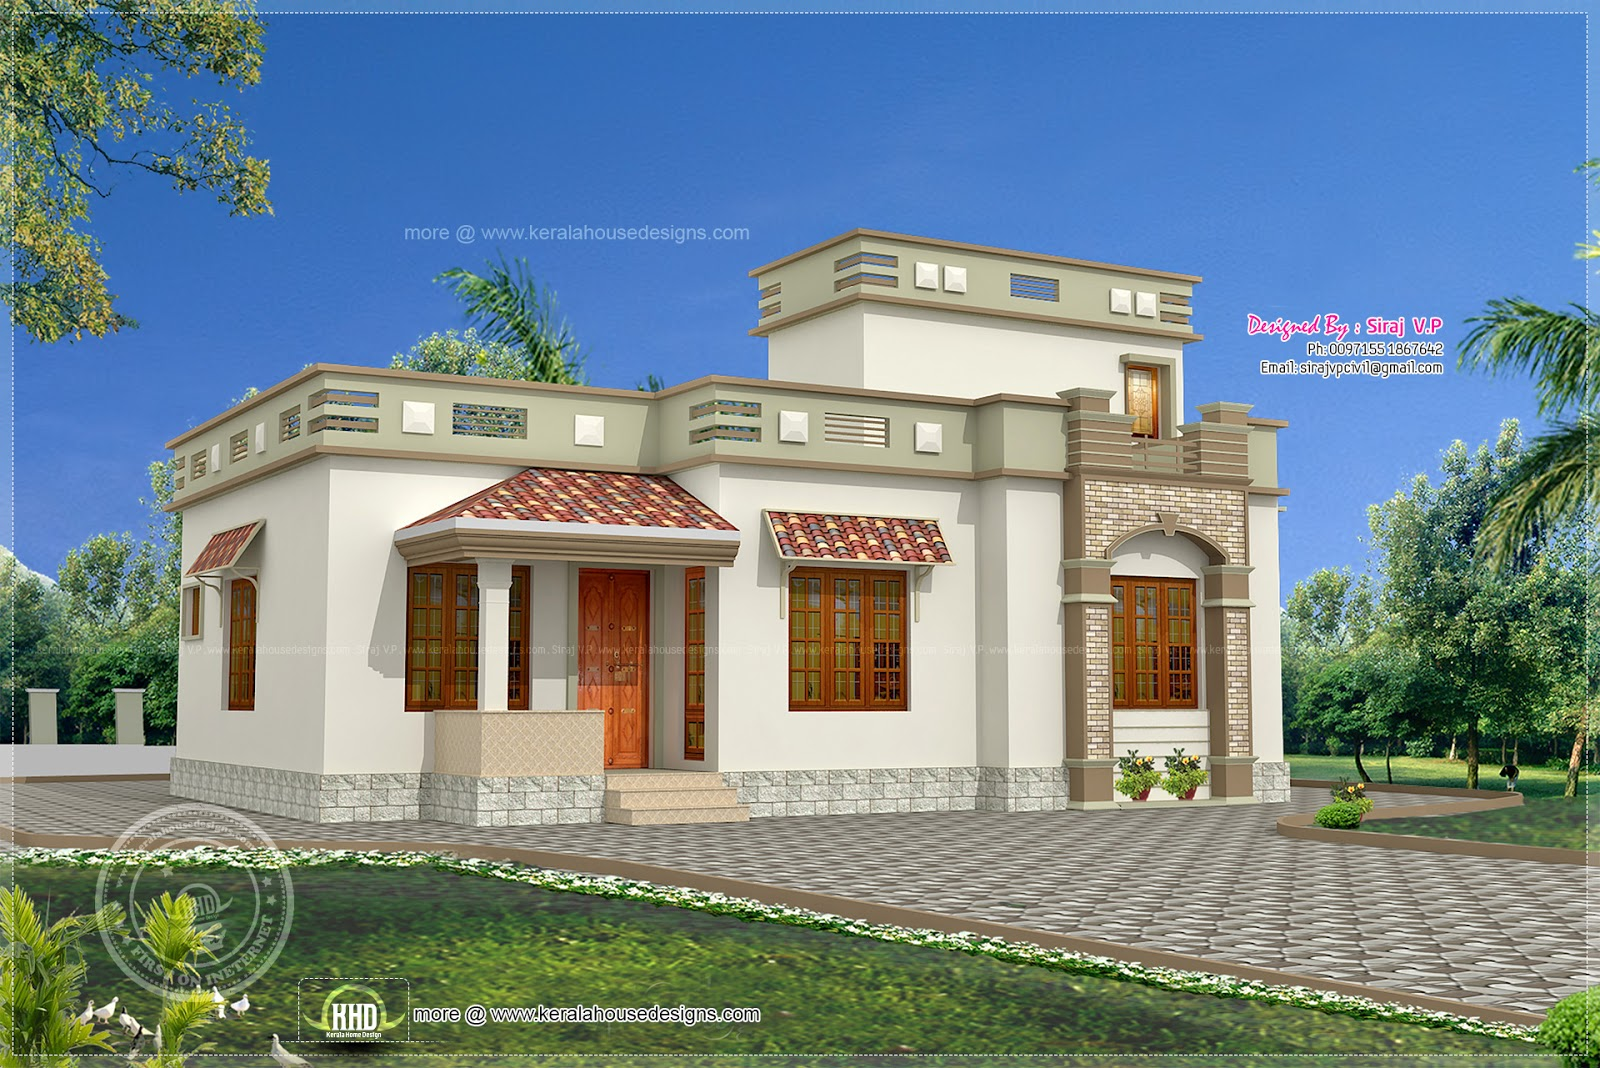 Low budget kerala style home in 1075 kerala home design and floor plans Low budget home design ideas